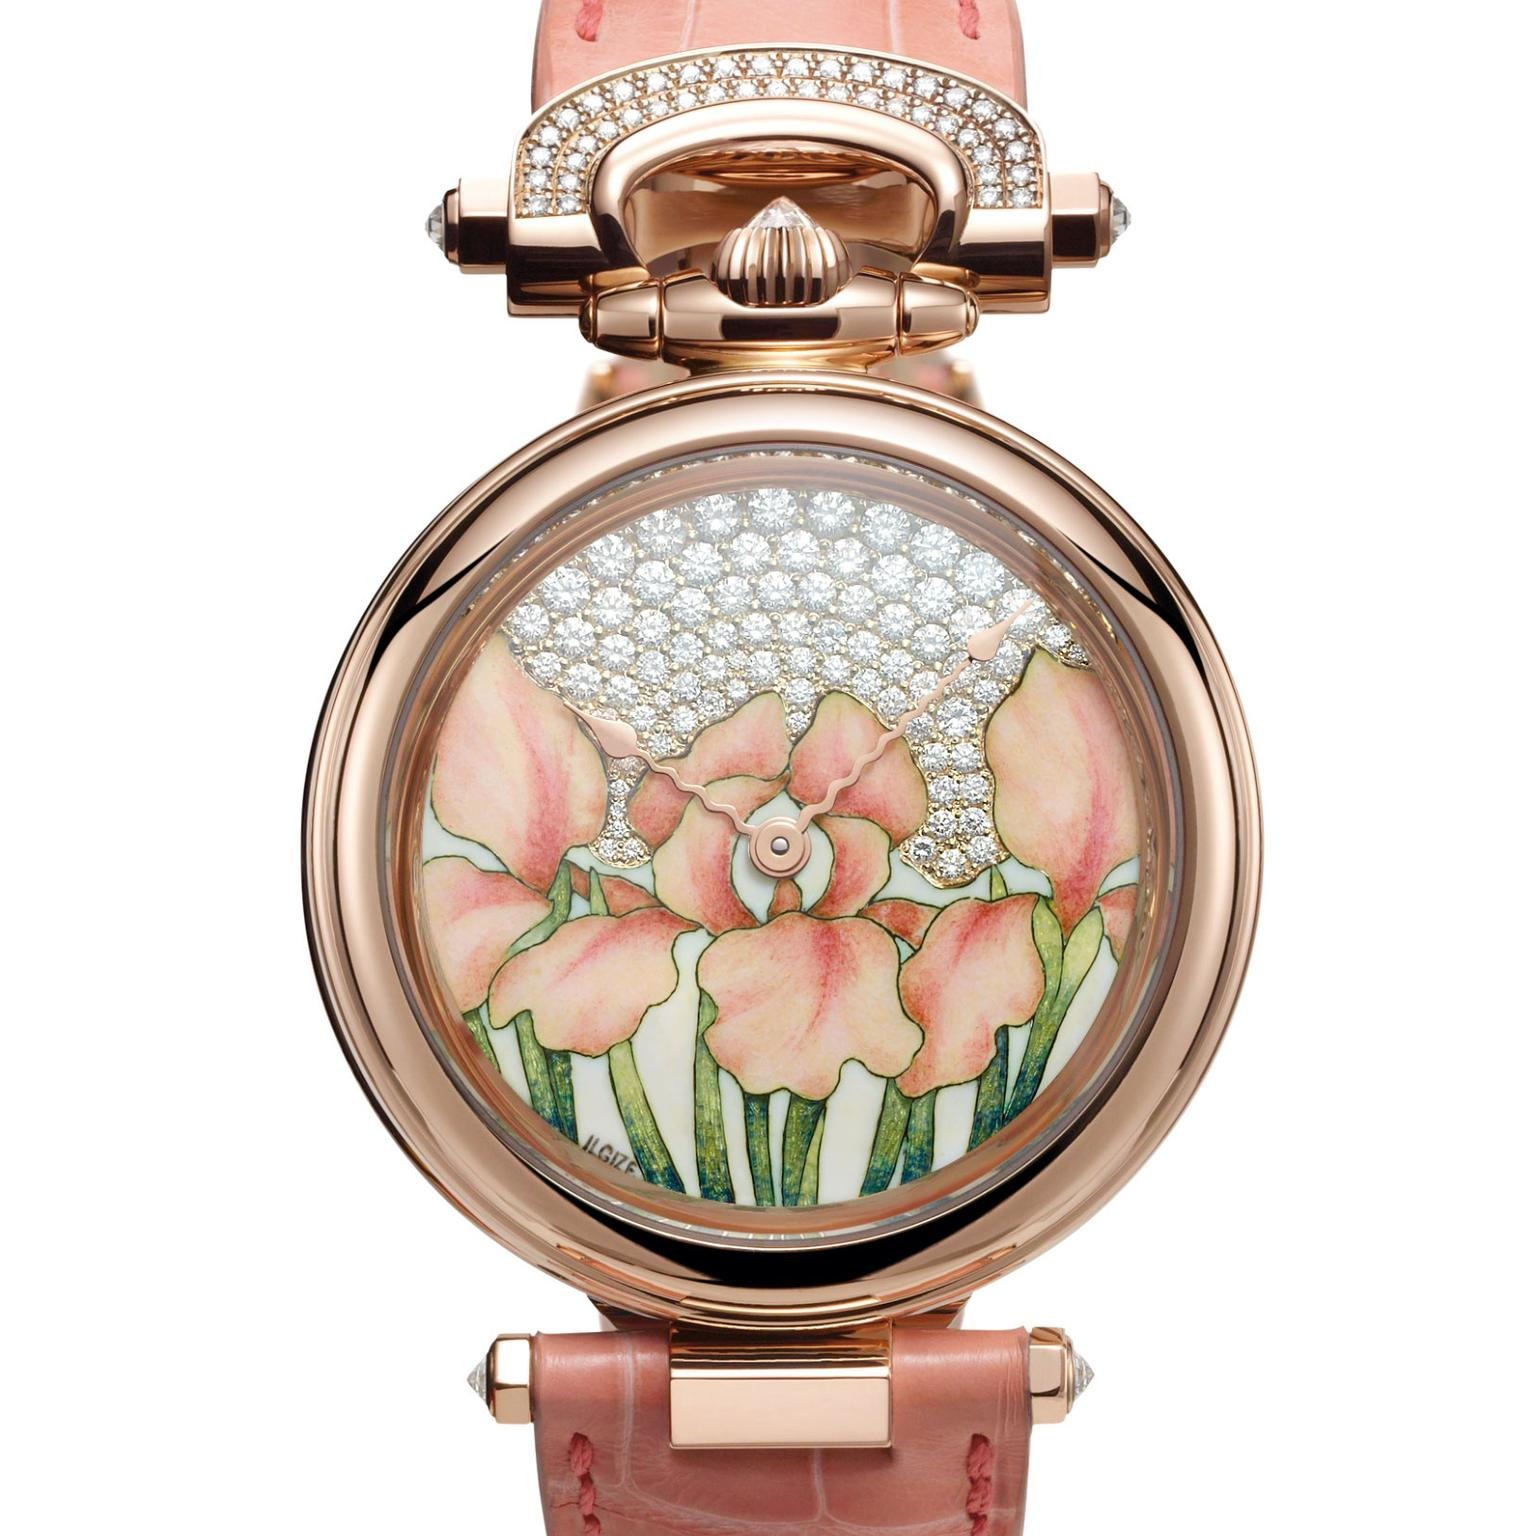 Bovet Amadeo Fleurier 39mm Orange Iris by Ilgiz F